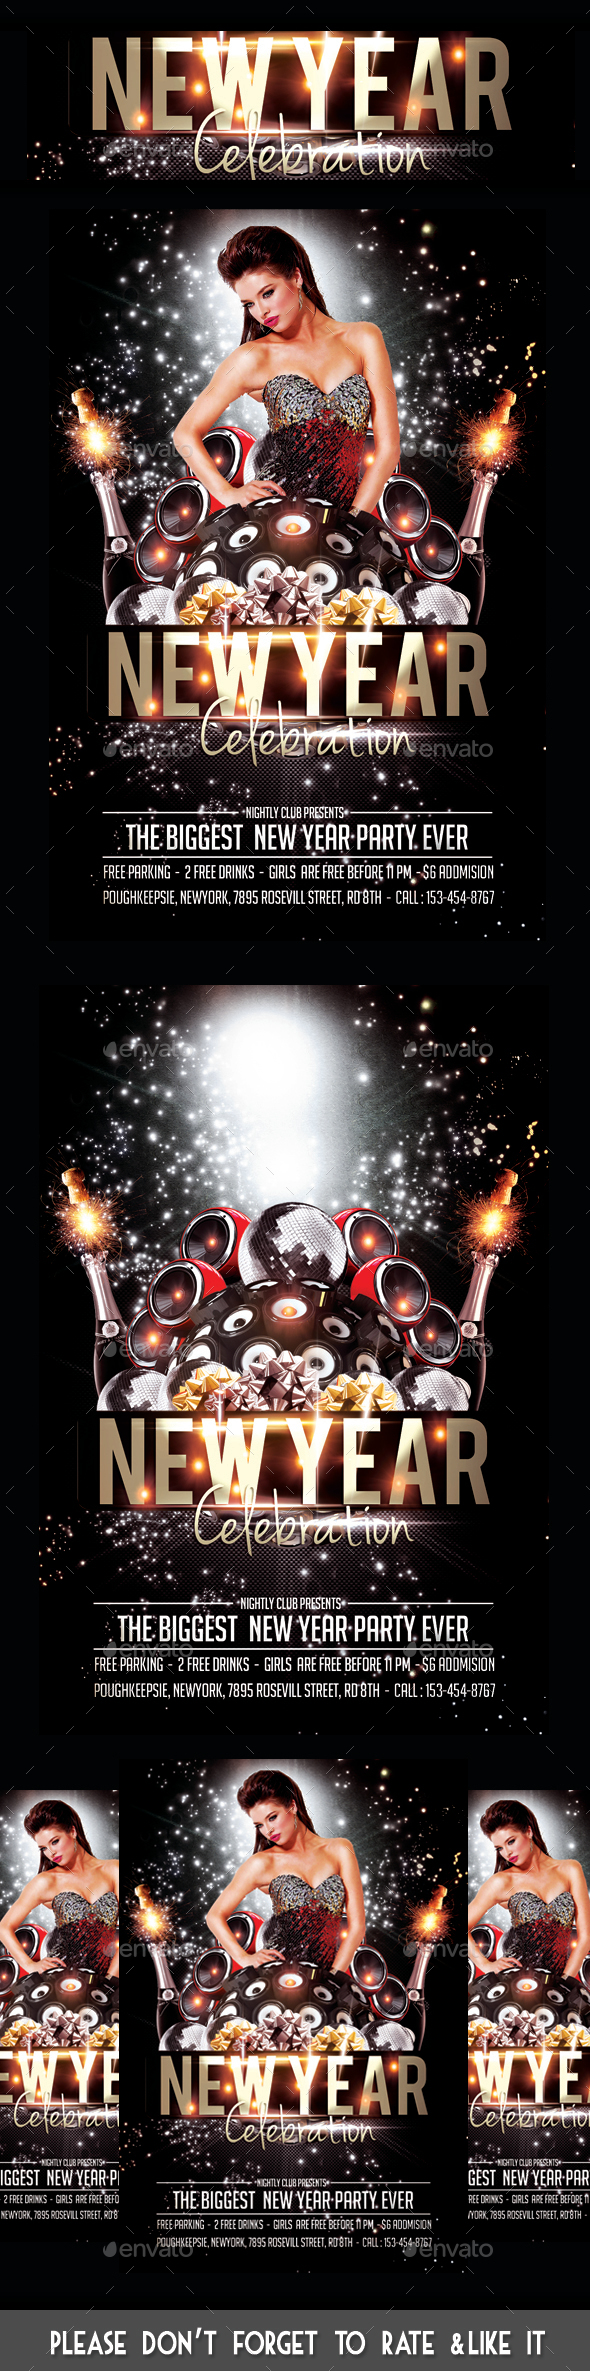 New Year Celebration Party Flyer - Flyers Print Templates